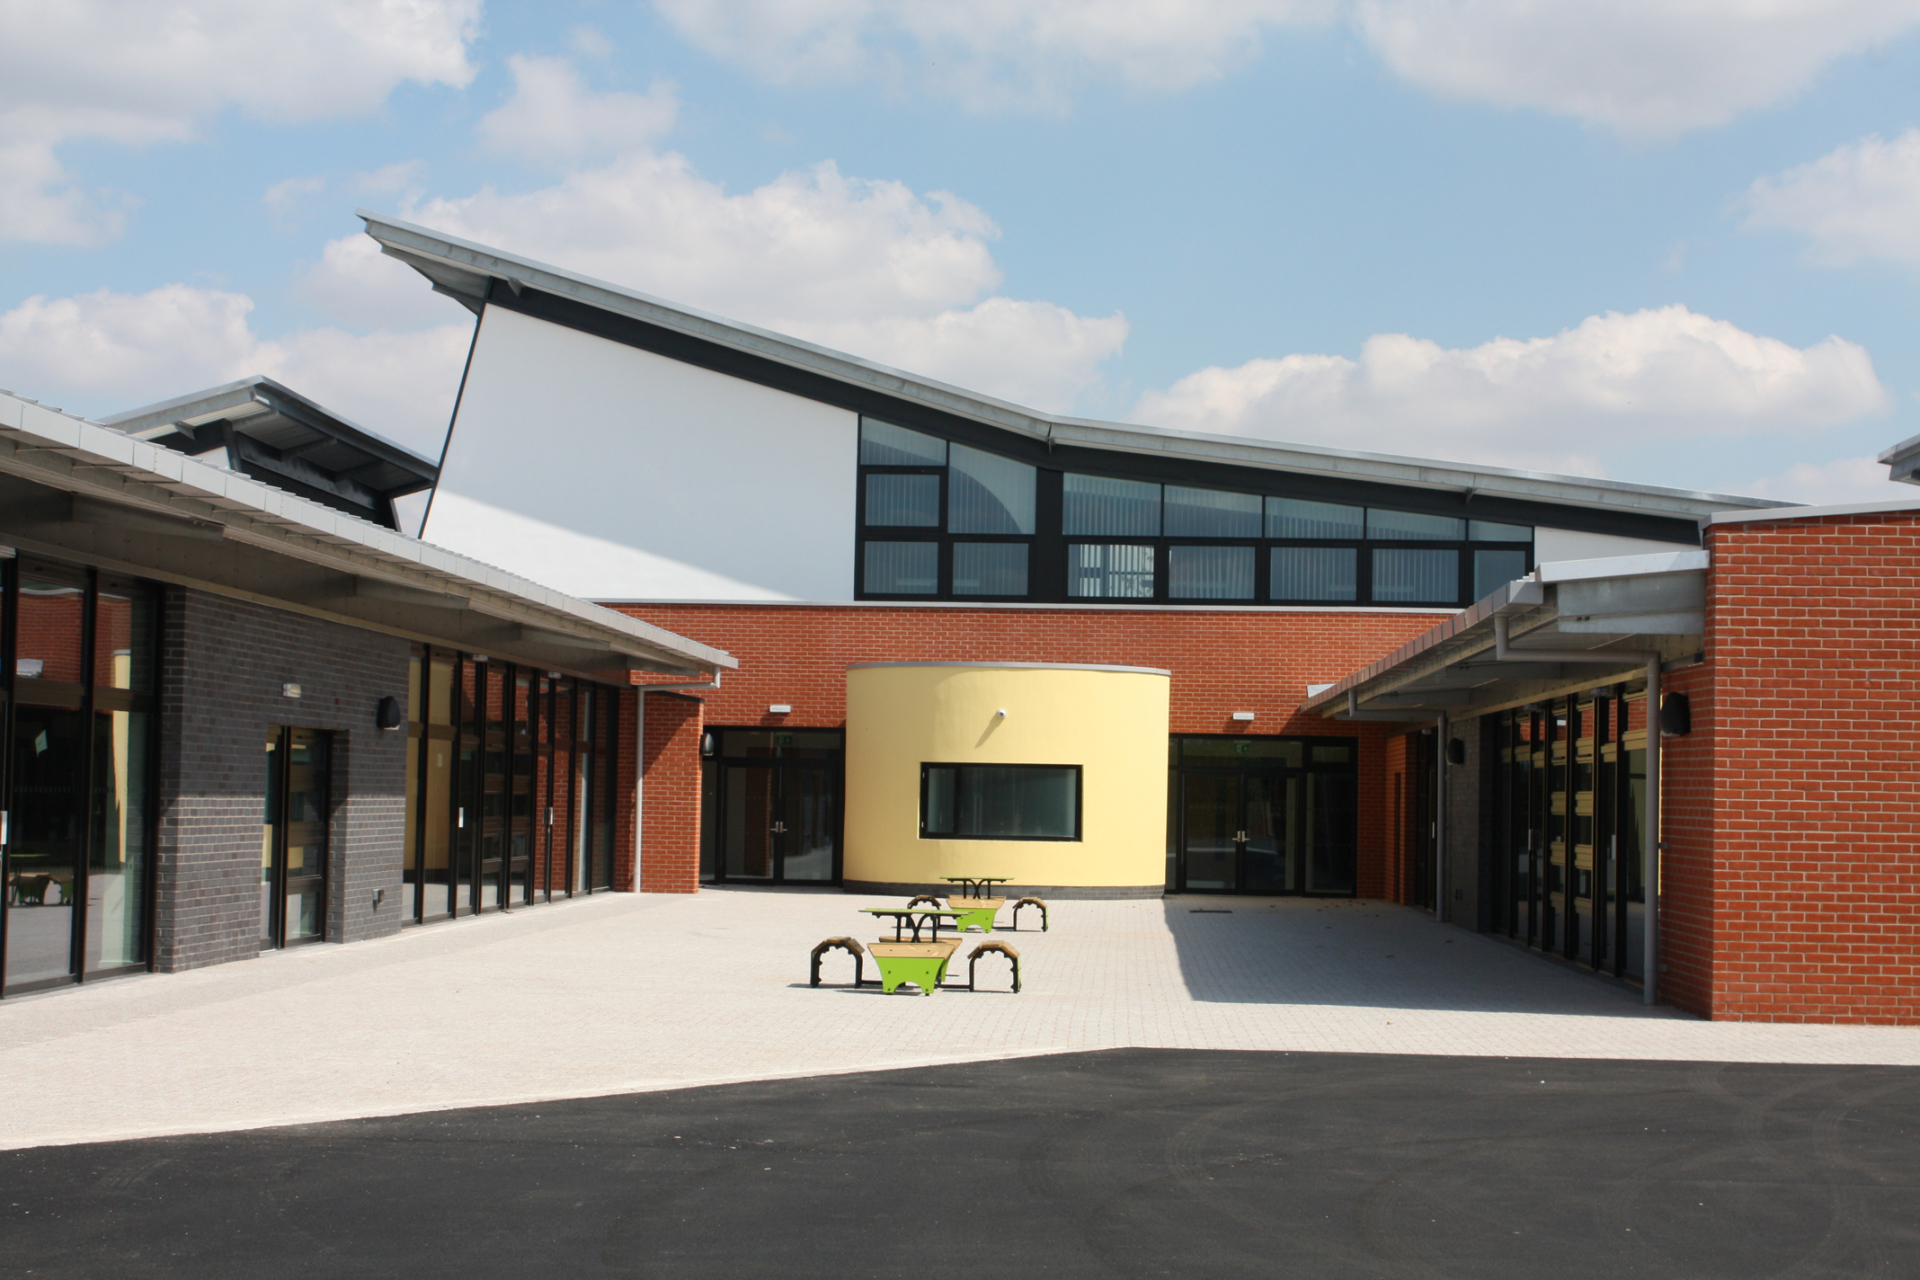 Coleshill Heath School